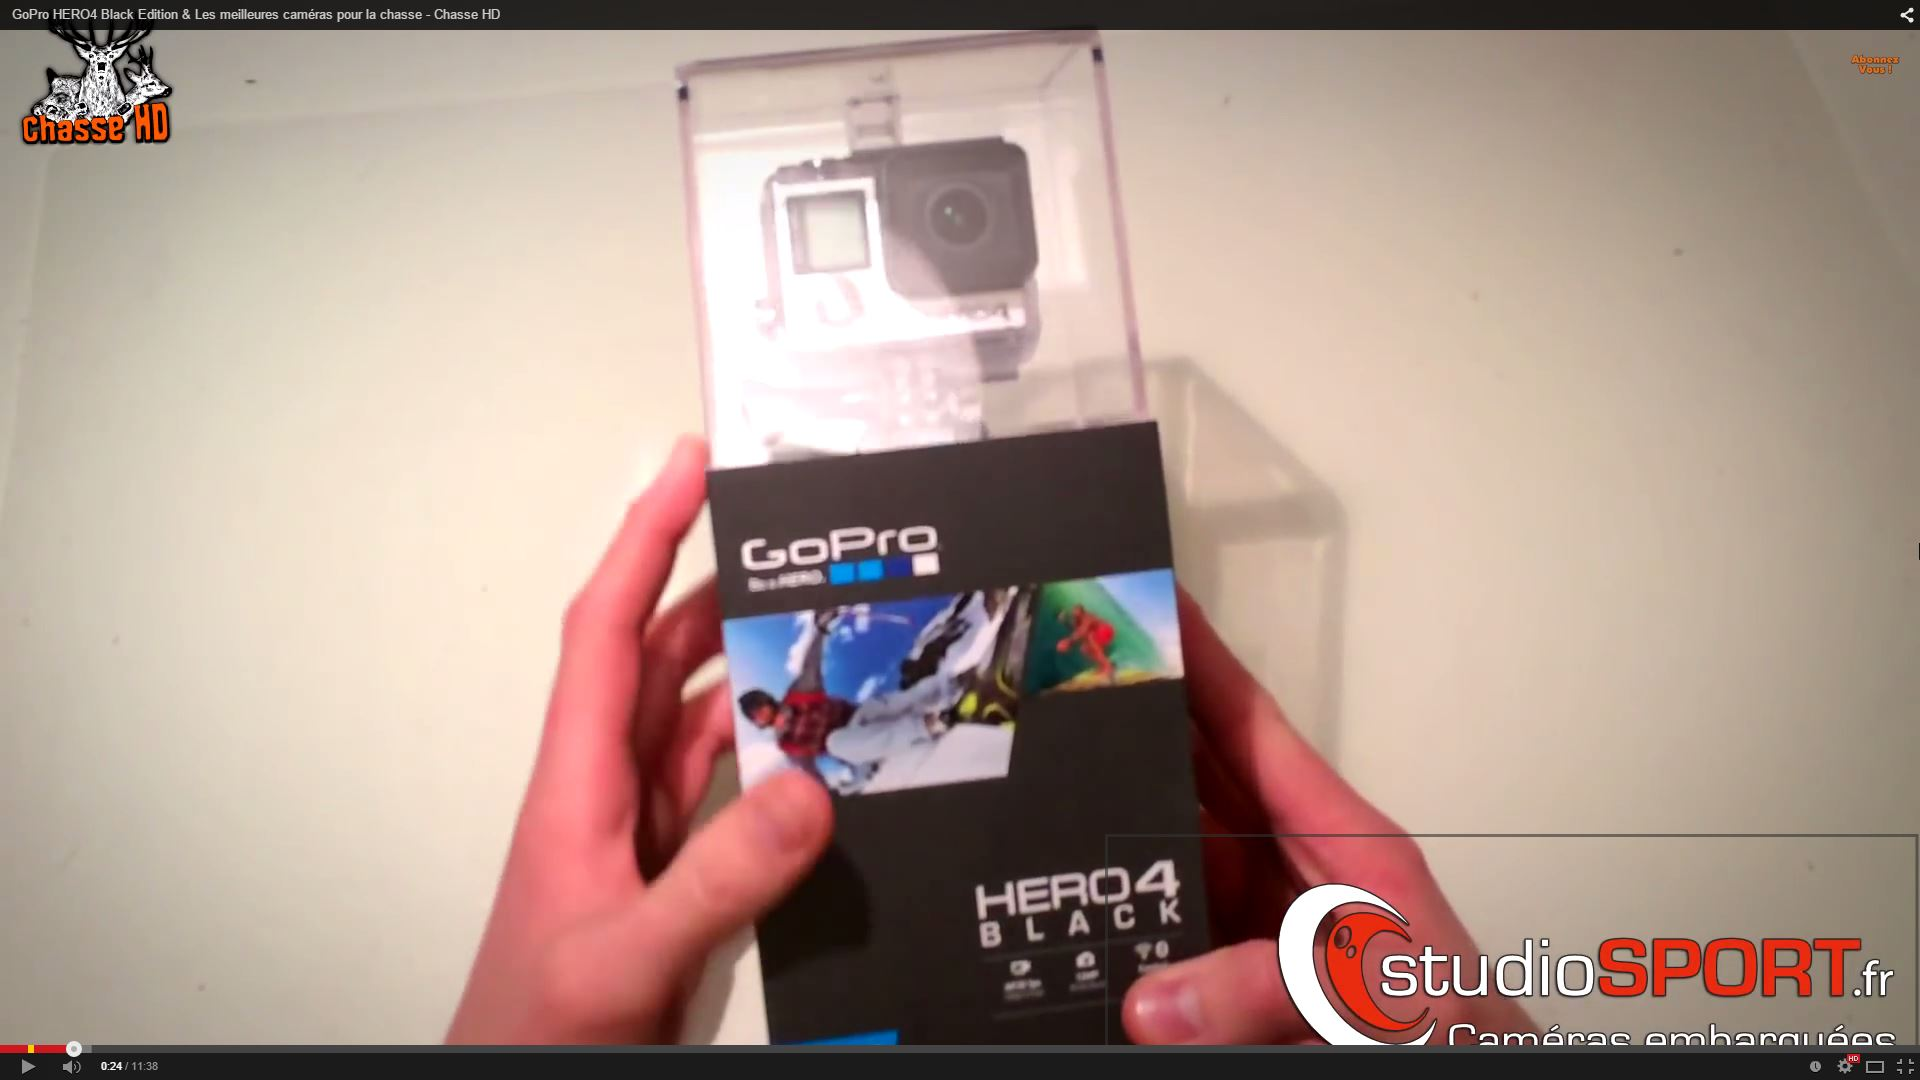 2015-02-11 10_29_55-GoPro HERO4 Black Edition & Les meilleures cameras pour la chasse - Chasse HD -